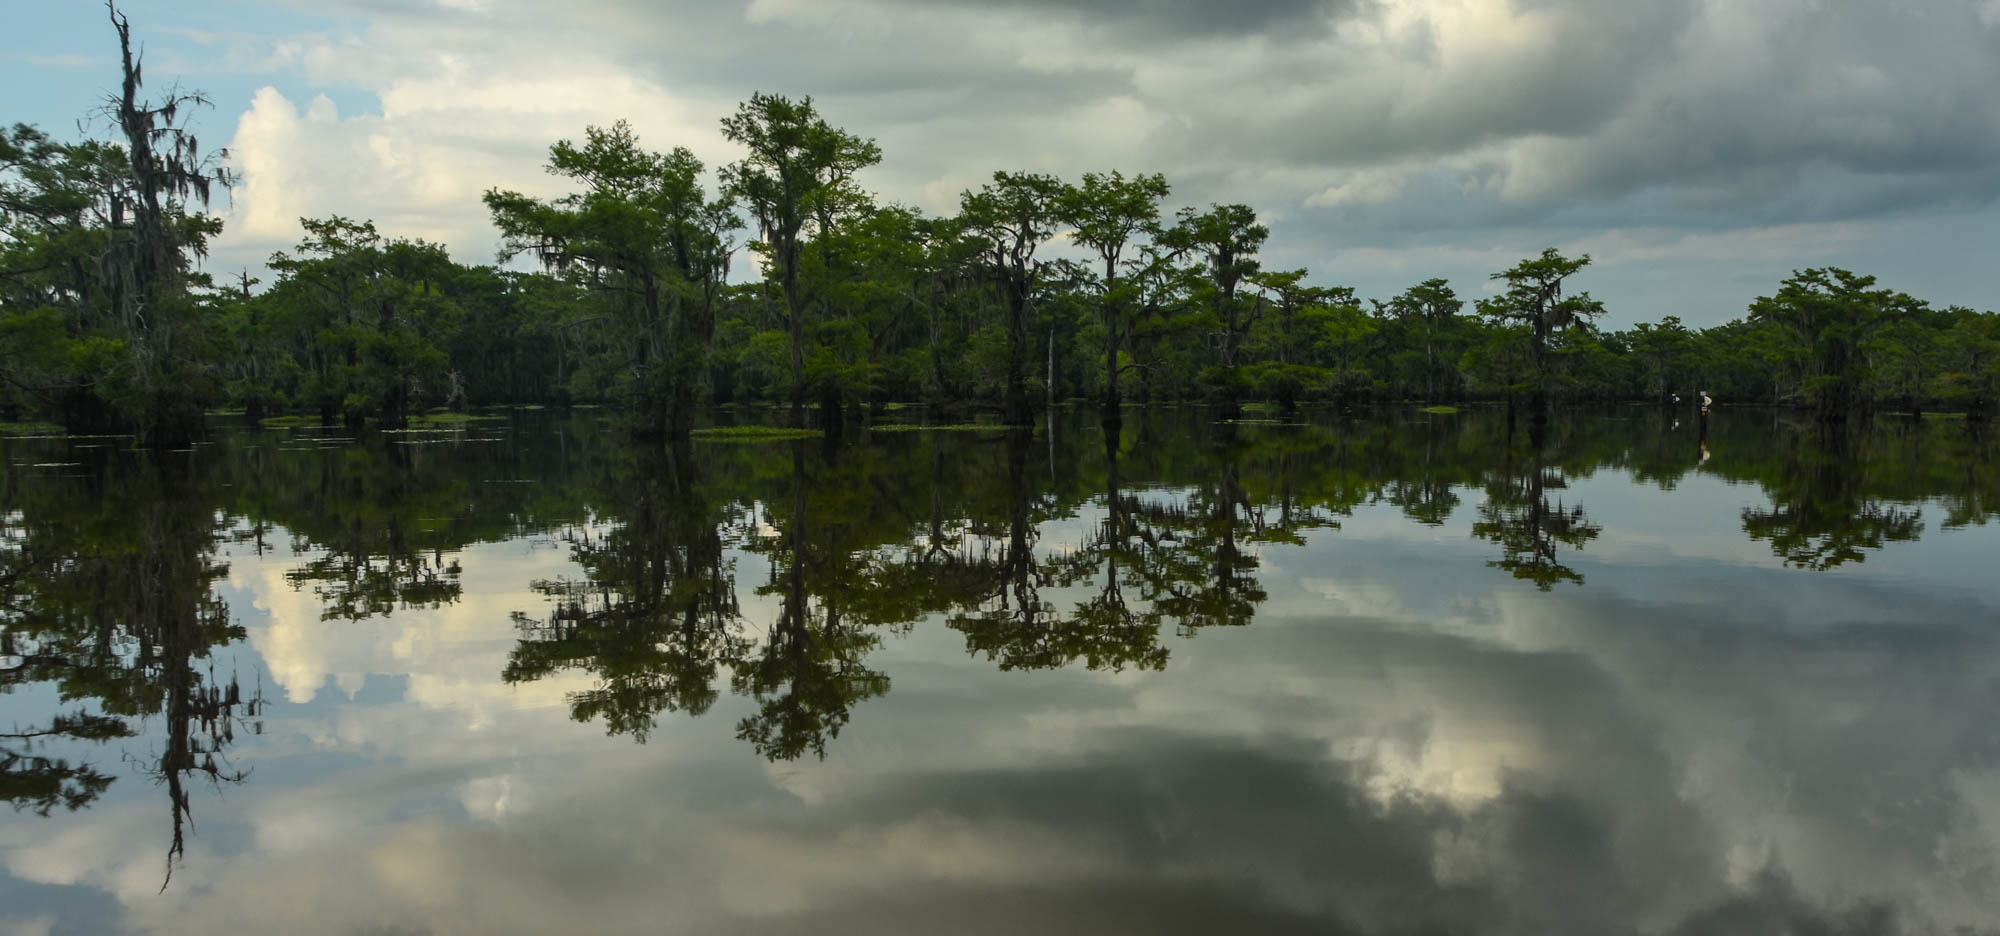 03.sjs.Caddo Lake.jpg.jpg